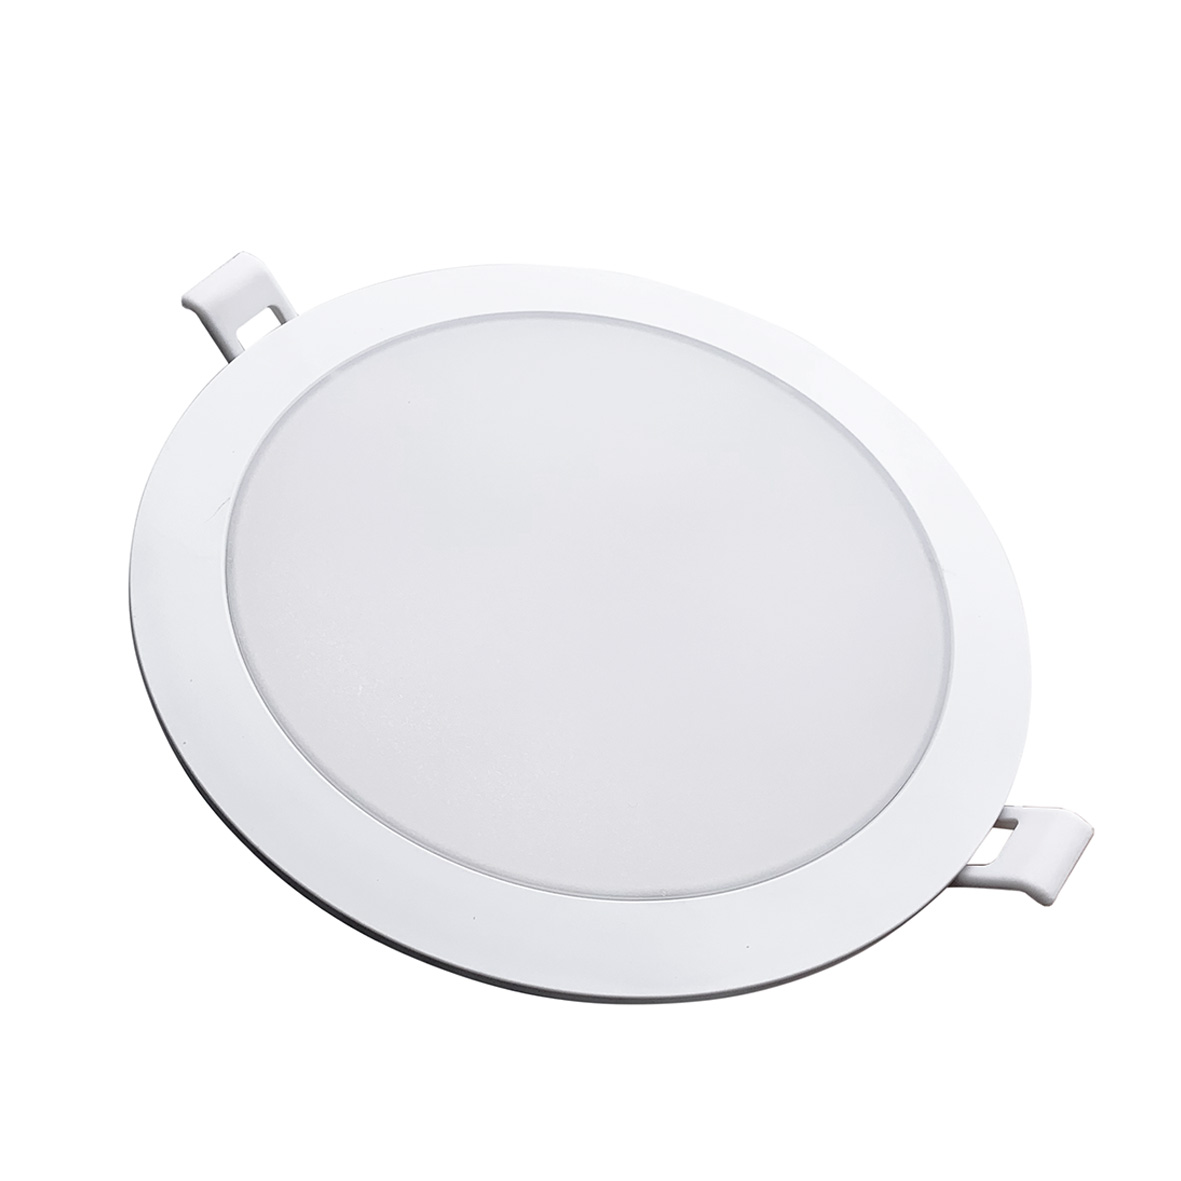 Spotlight LED recessed light 24W 220v round diameter 224mm driver integrated DL8